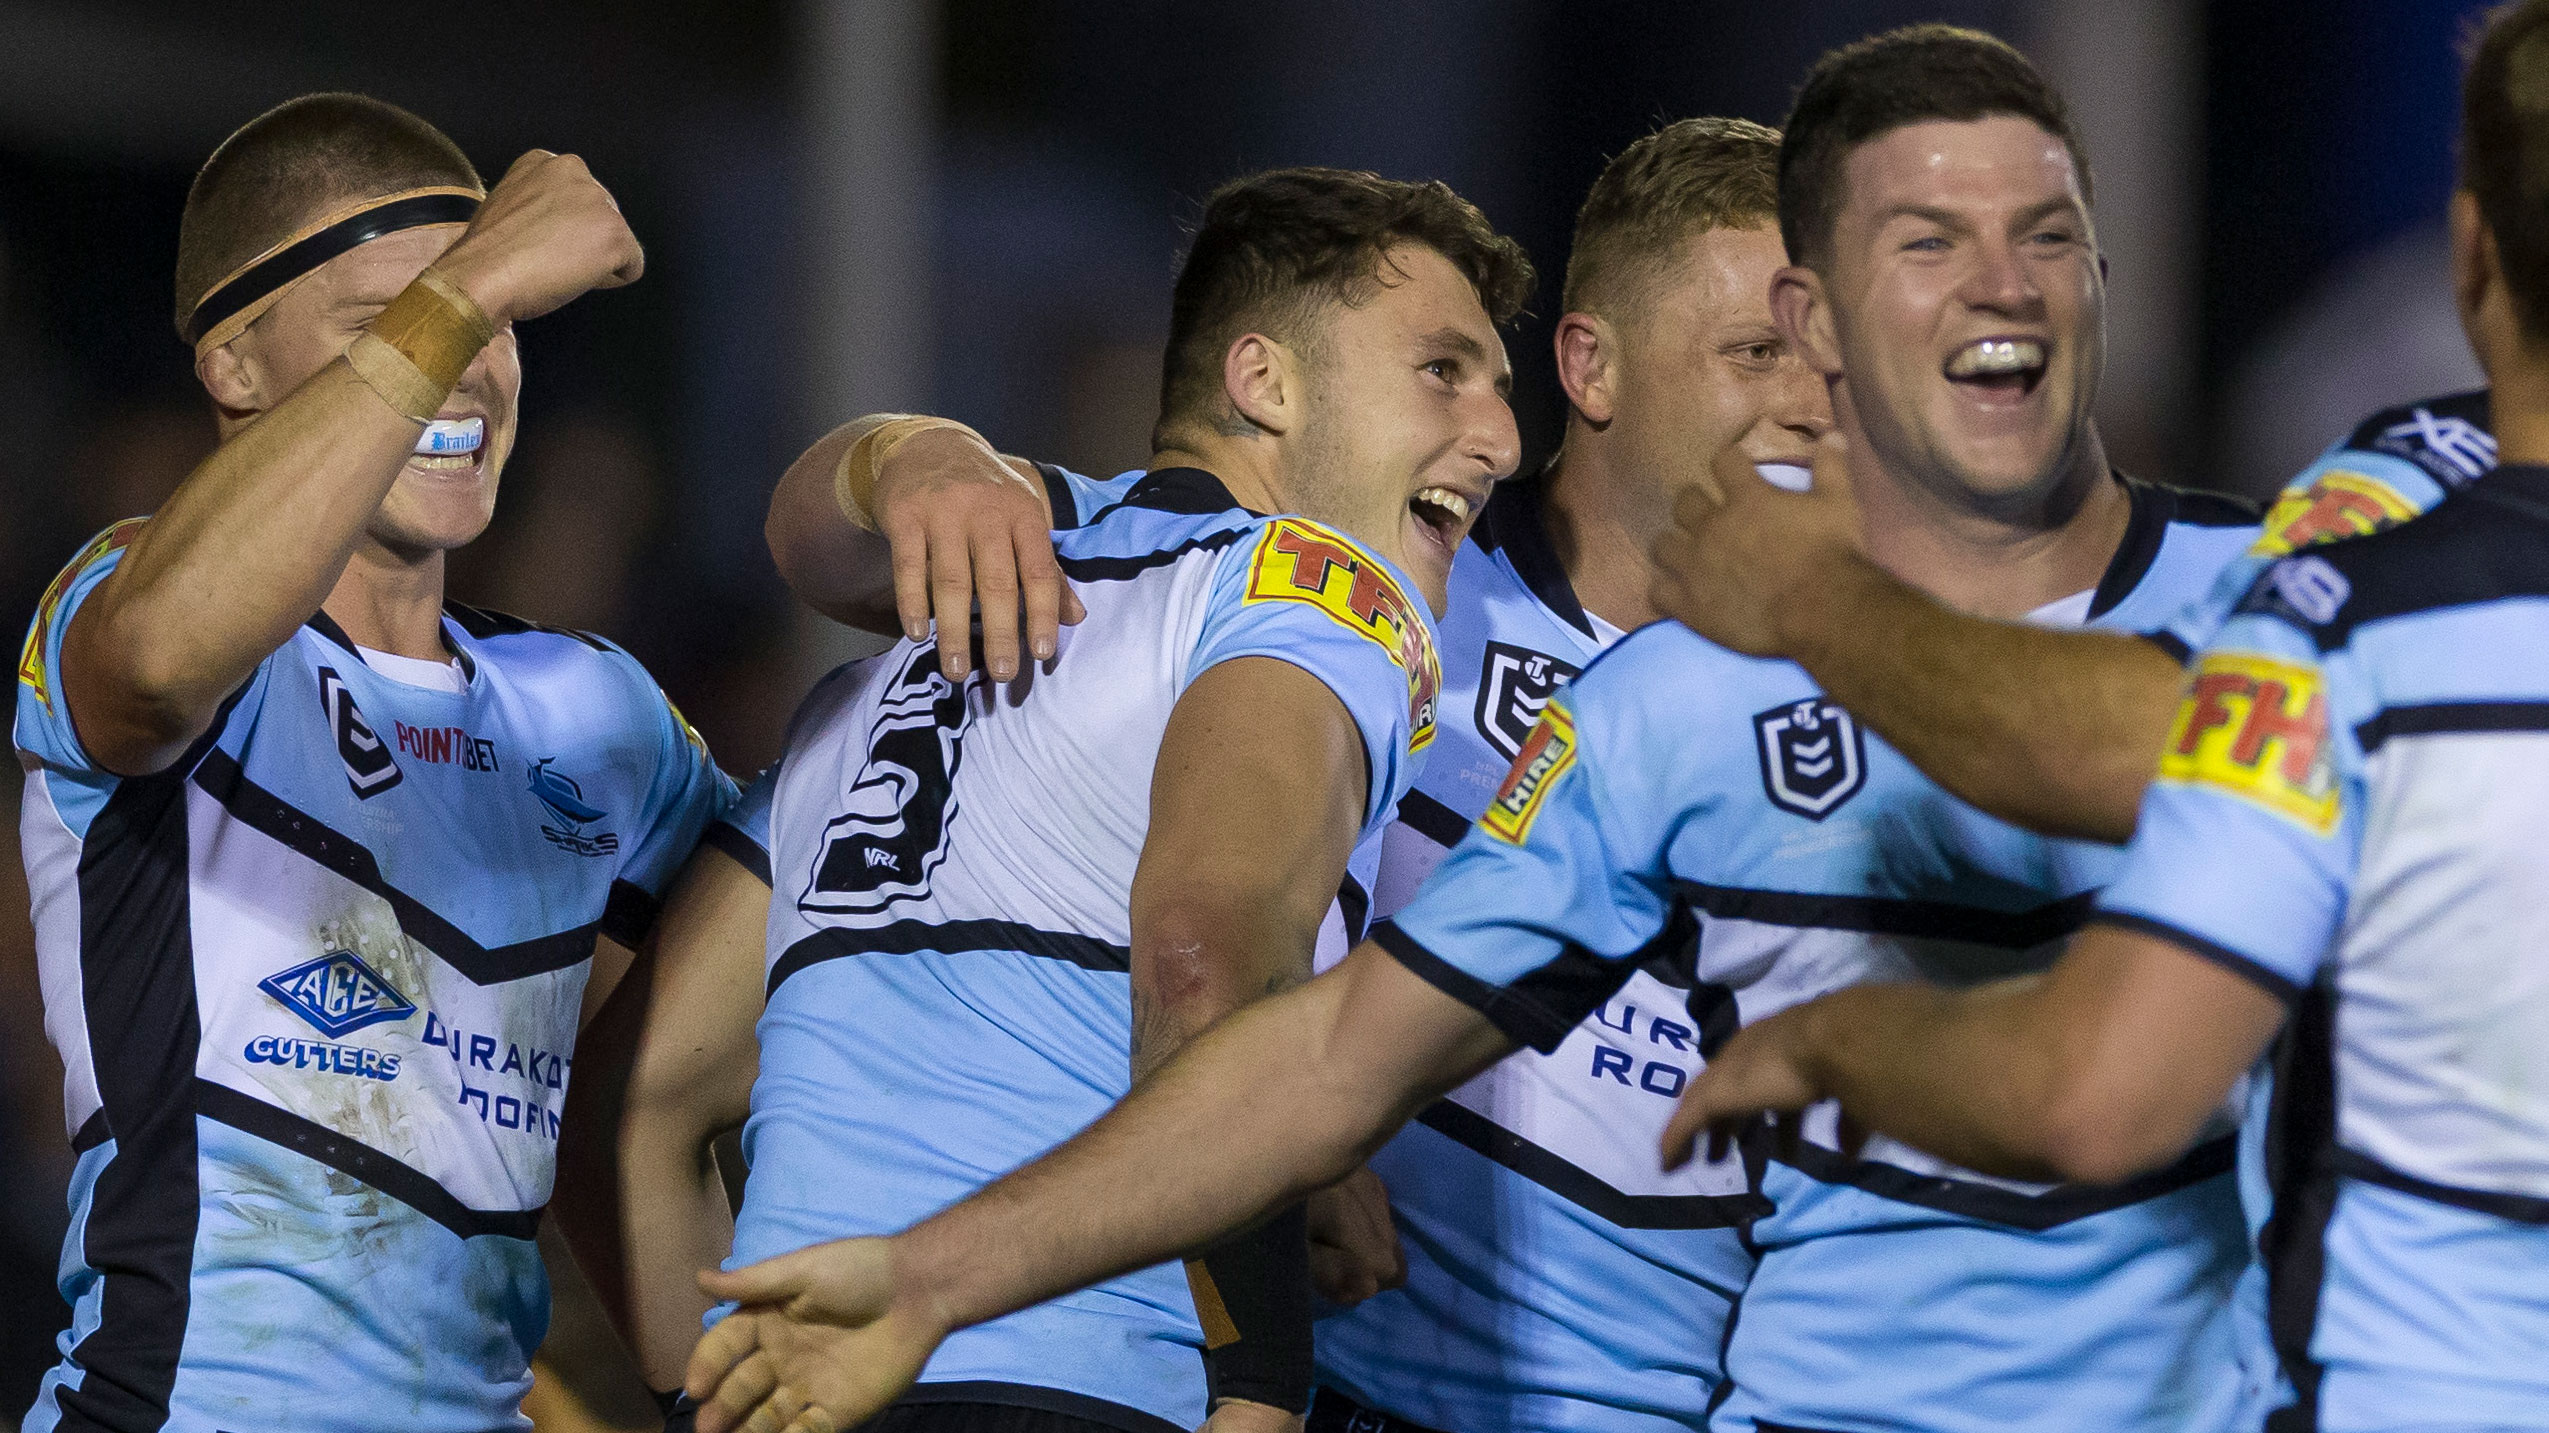 The Cronulla Sharks celebrate a try against the Rabbitohs.